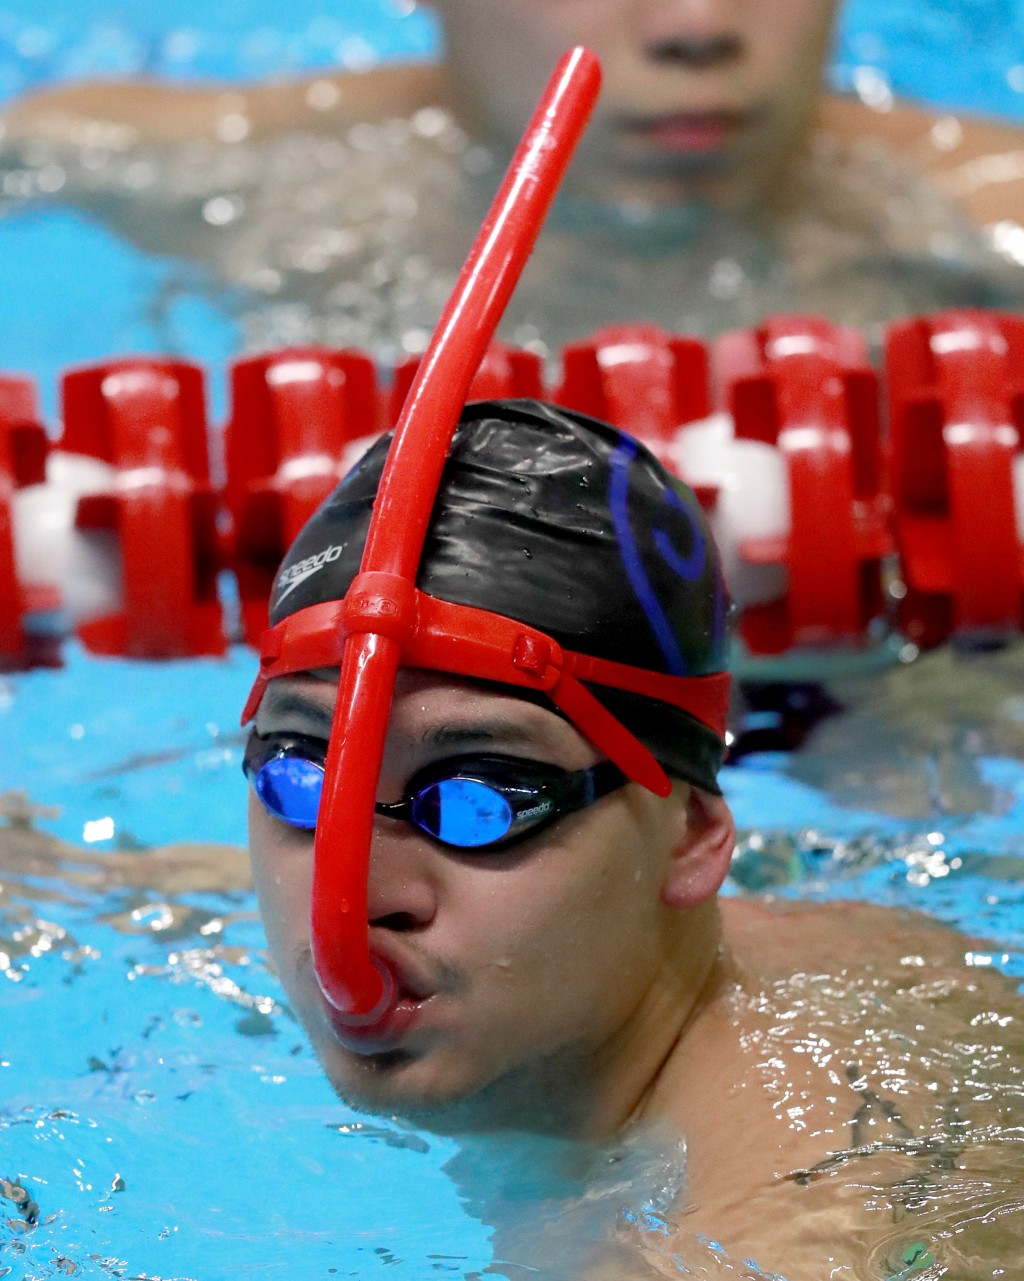 Singapore's Joseph Schooling swims during a training session at the 18th Asian Games in Jakarta, Indonesia, Friday, Aug. 17, 2018. (AP Photo/Bernat Ar...